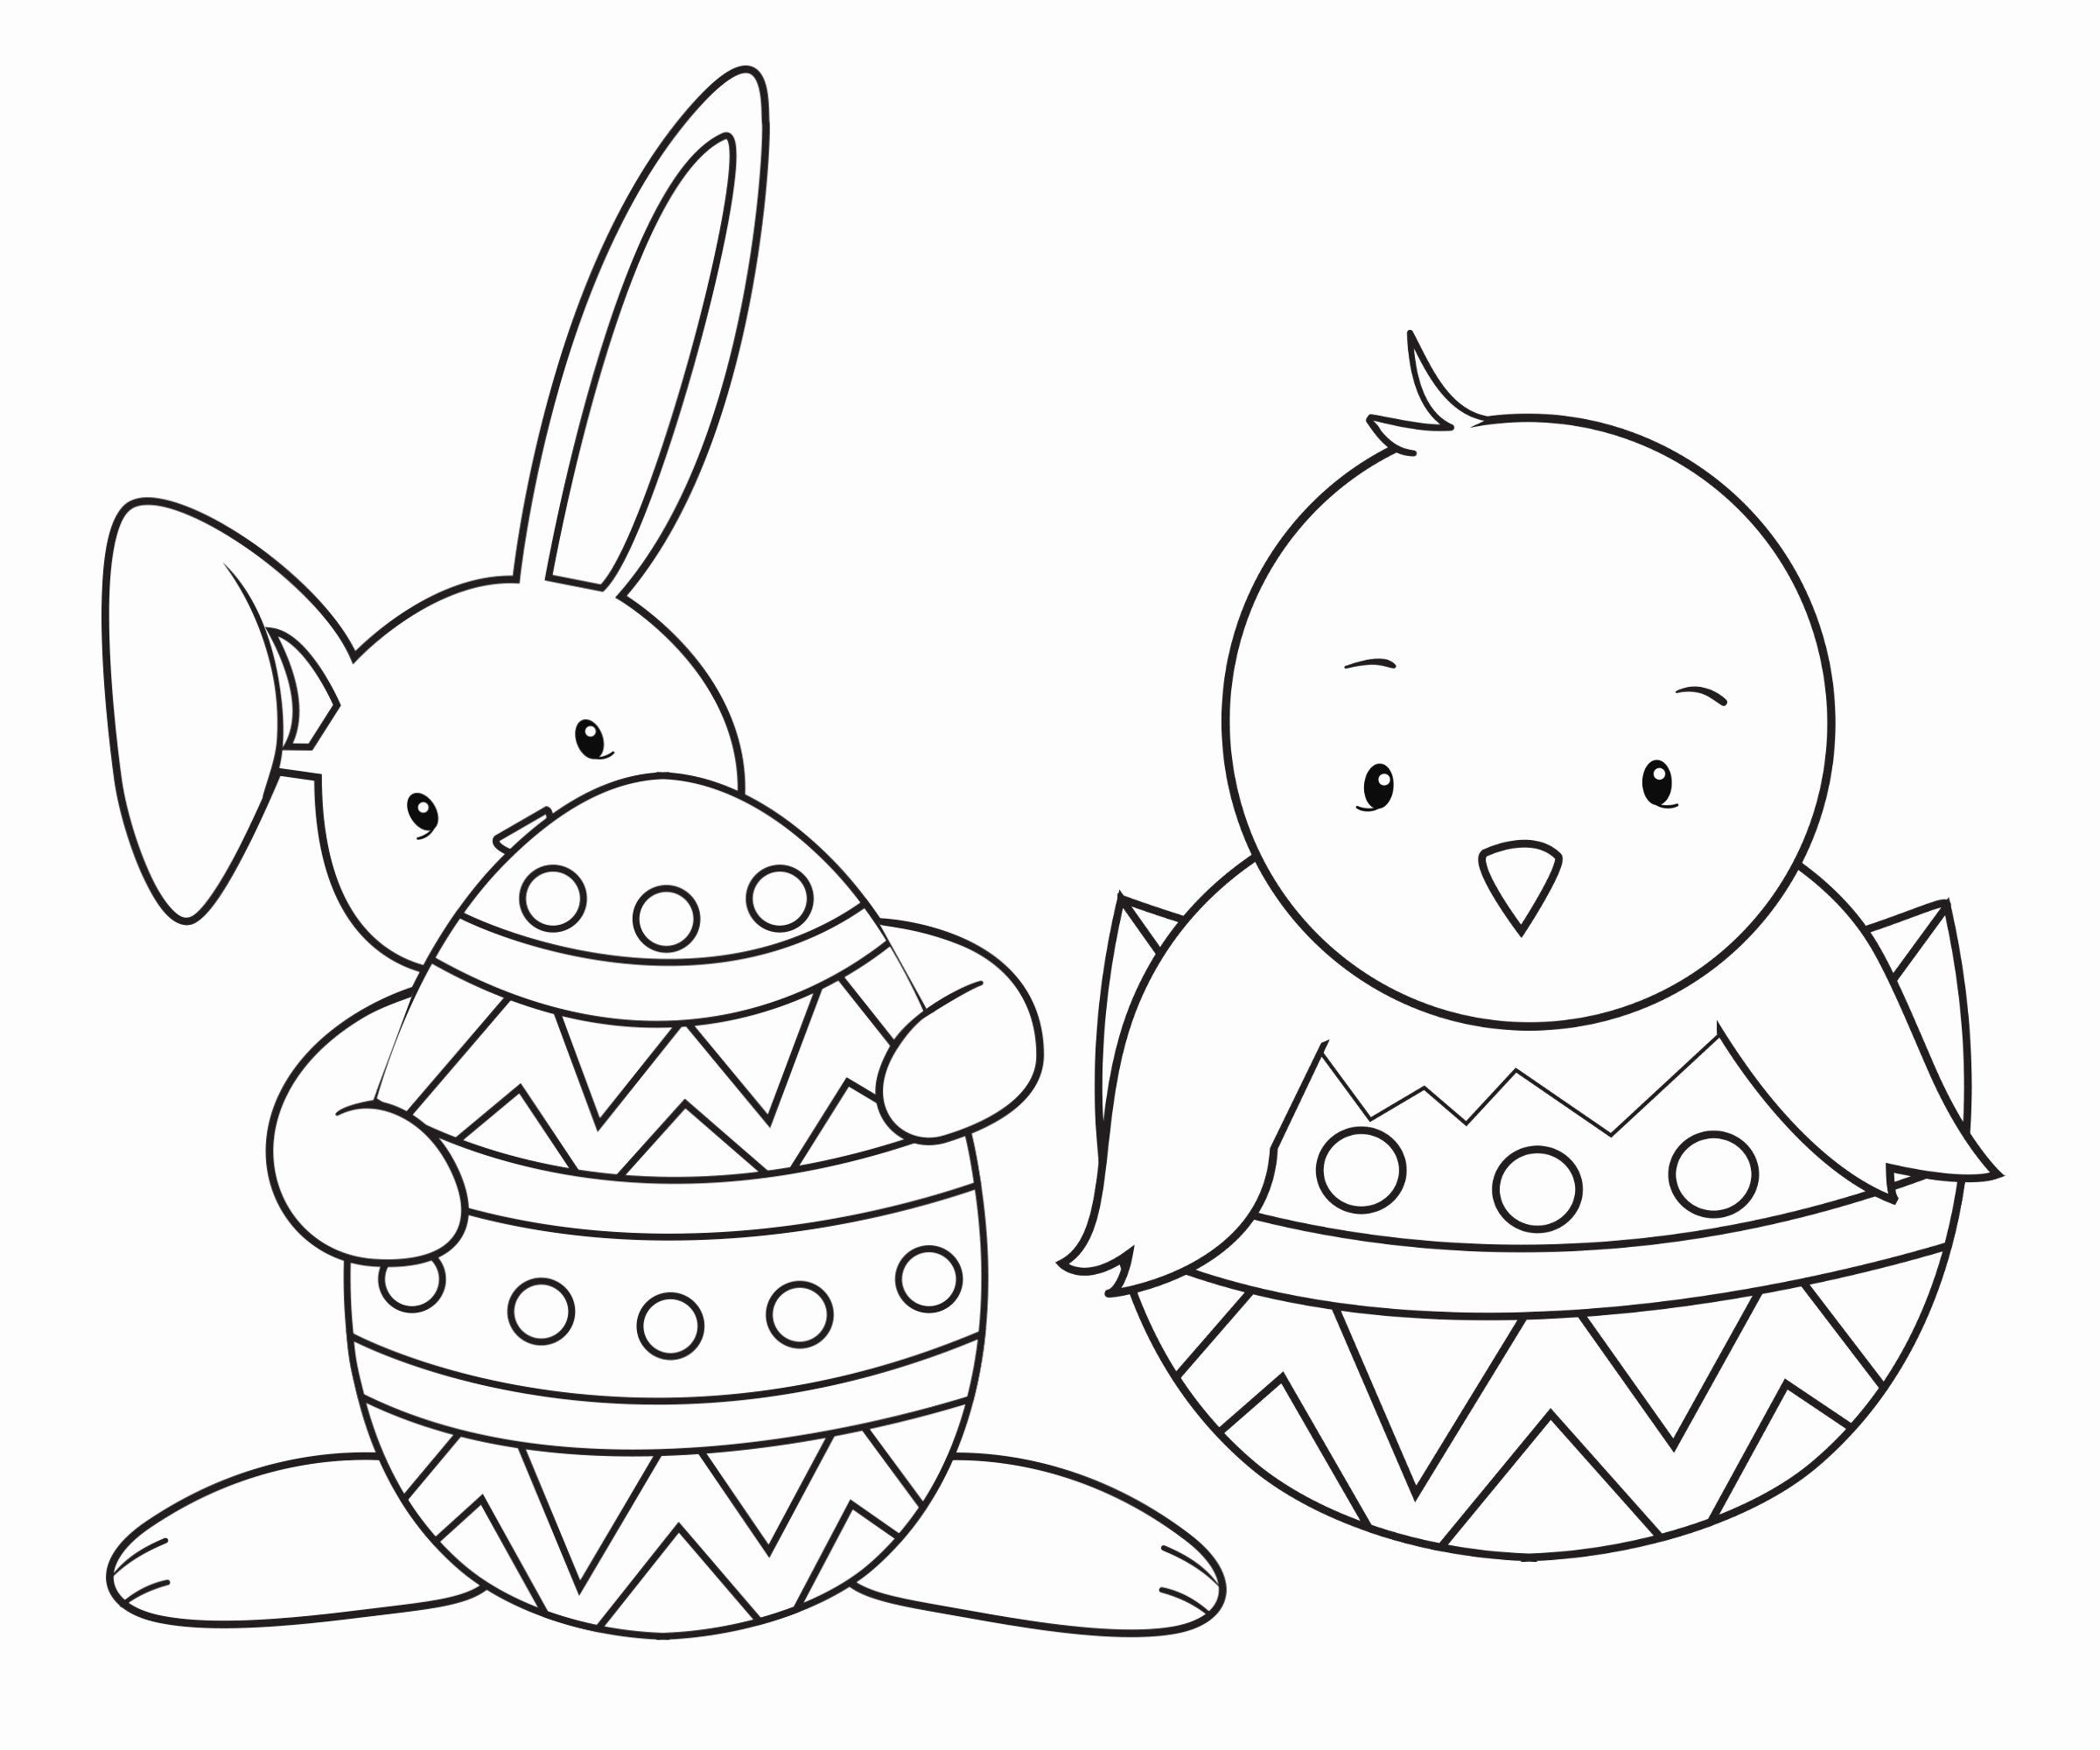 Kids Easter Coloring Pages Luxury 15 Easter Colouring In Pages The Organised Housewife Bunny Coloring Pages Easter Bunny Colouring Easter Coloring Book